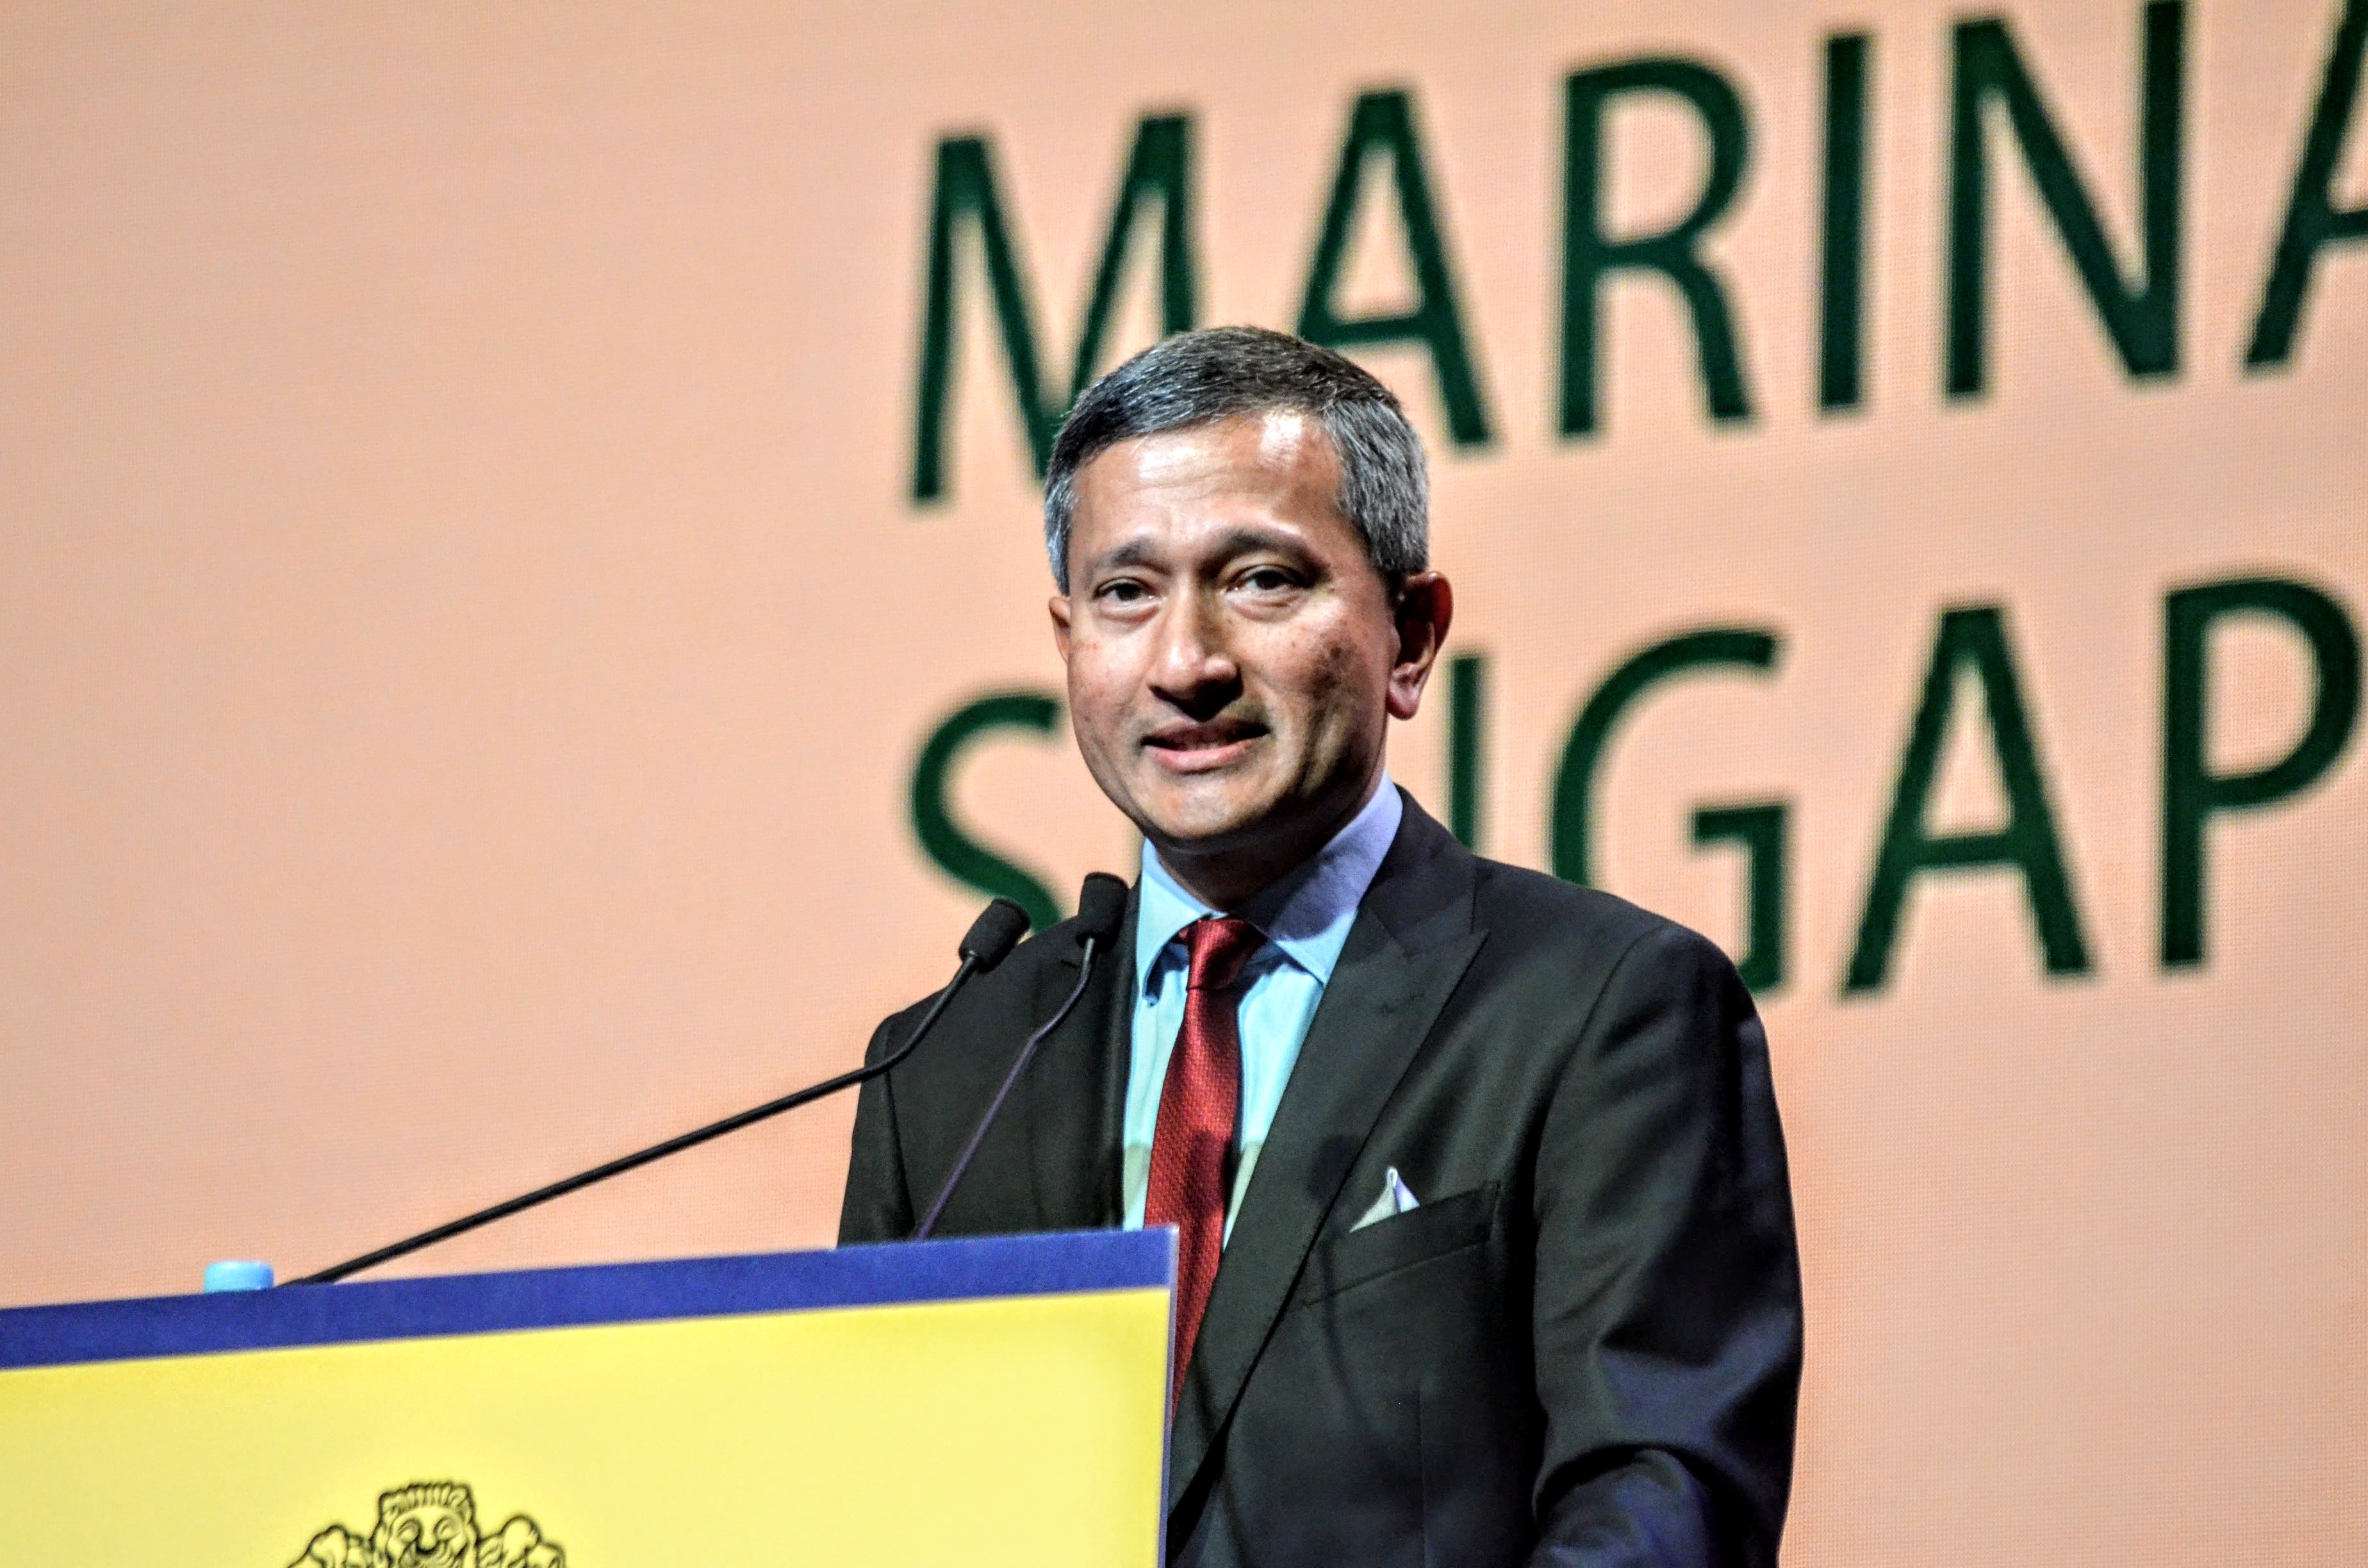 Dr Vivian Balakrishnan, Minister for Foreign Affairs, Singapore speaking at the ASEAN India Pravasi Bharatiya Divas in Singapore at the Marina Bay Sands Convention centre. Photo: Connected to India